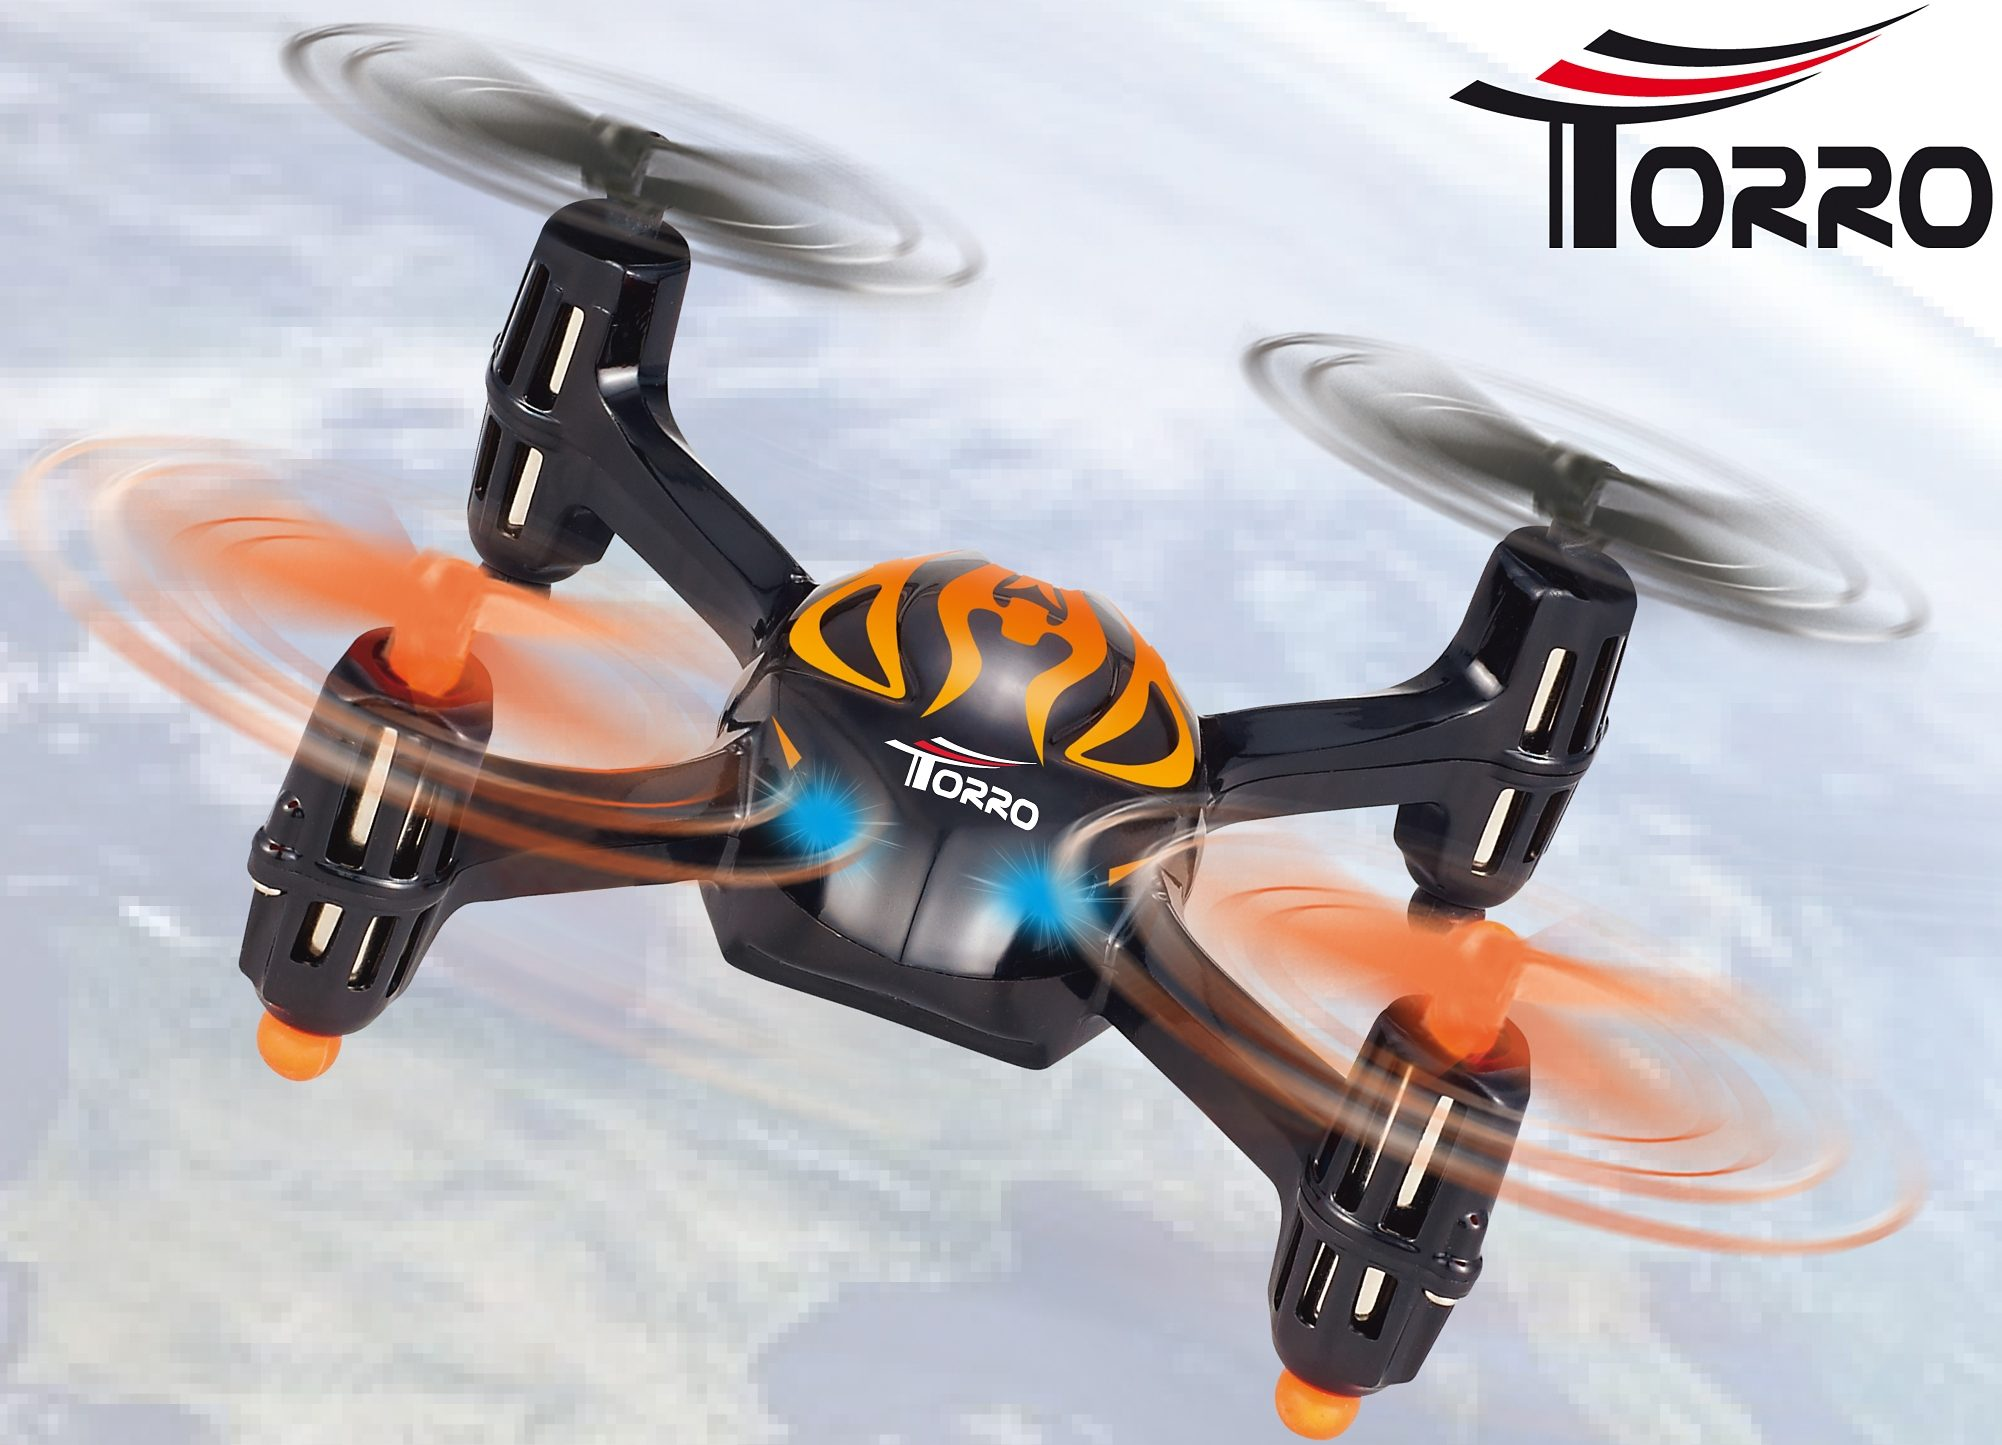 Torro RC-Komplett-Set, »U830 Mini Quadcopter«